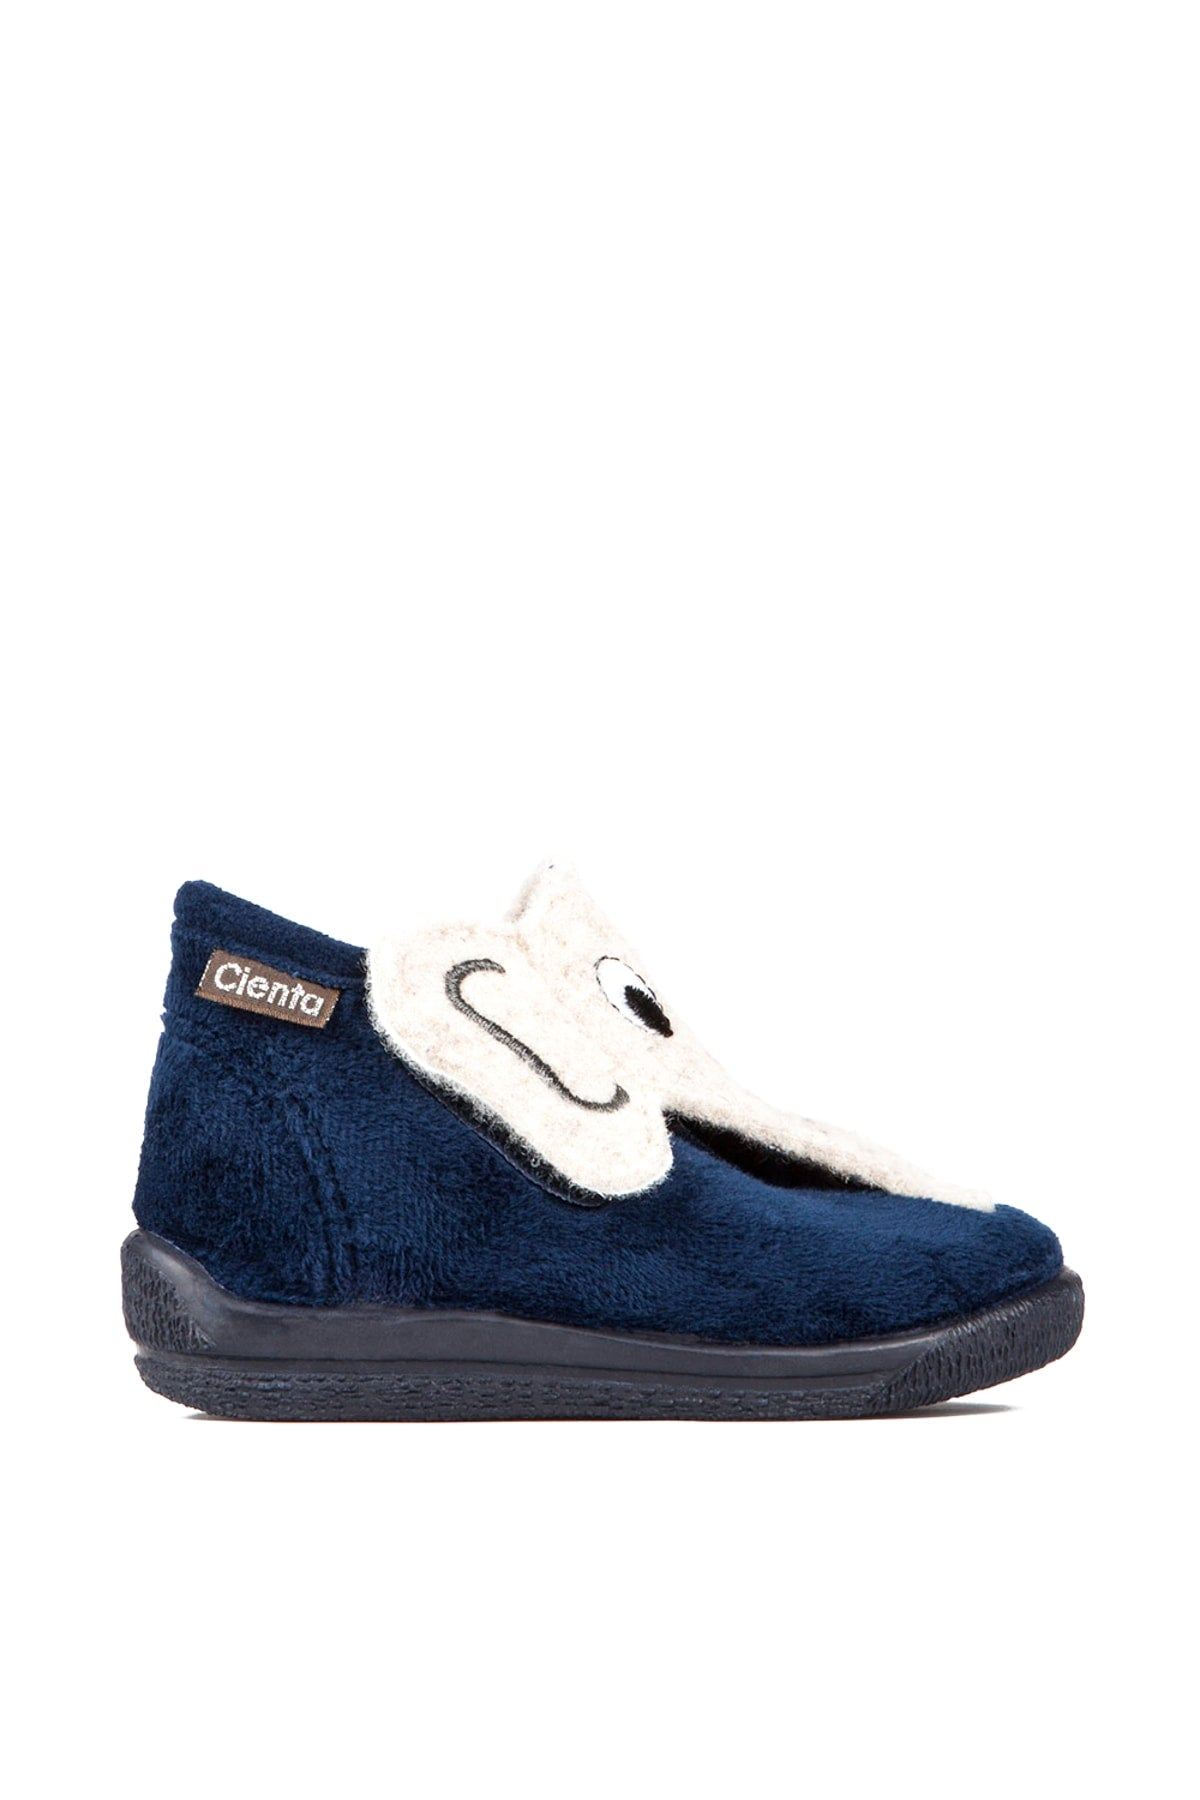 Cienta 132045.77 Navy Blue Elephant Slipper